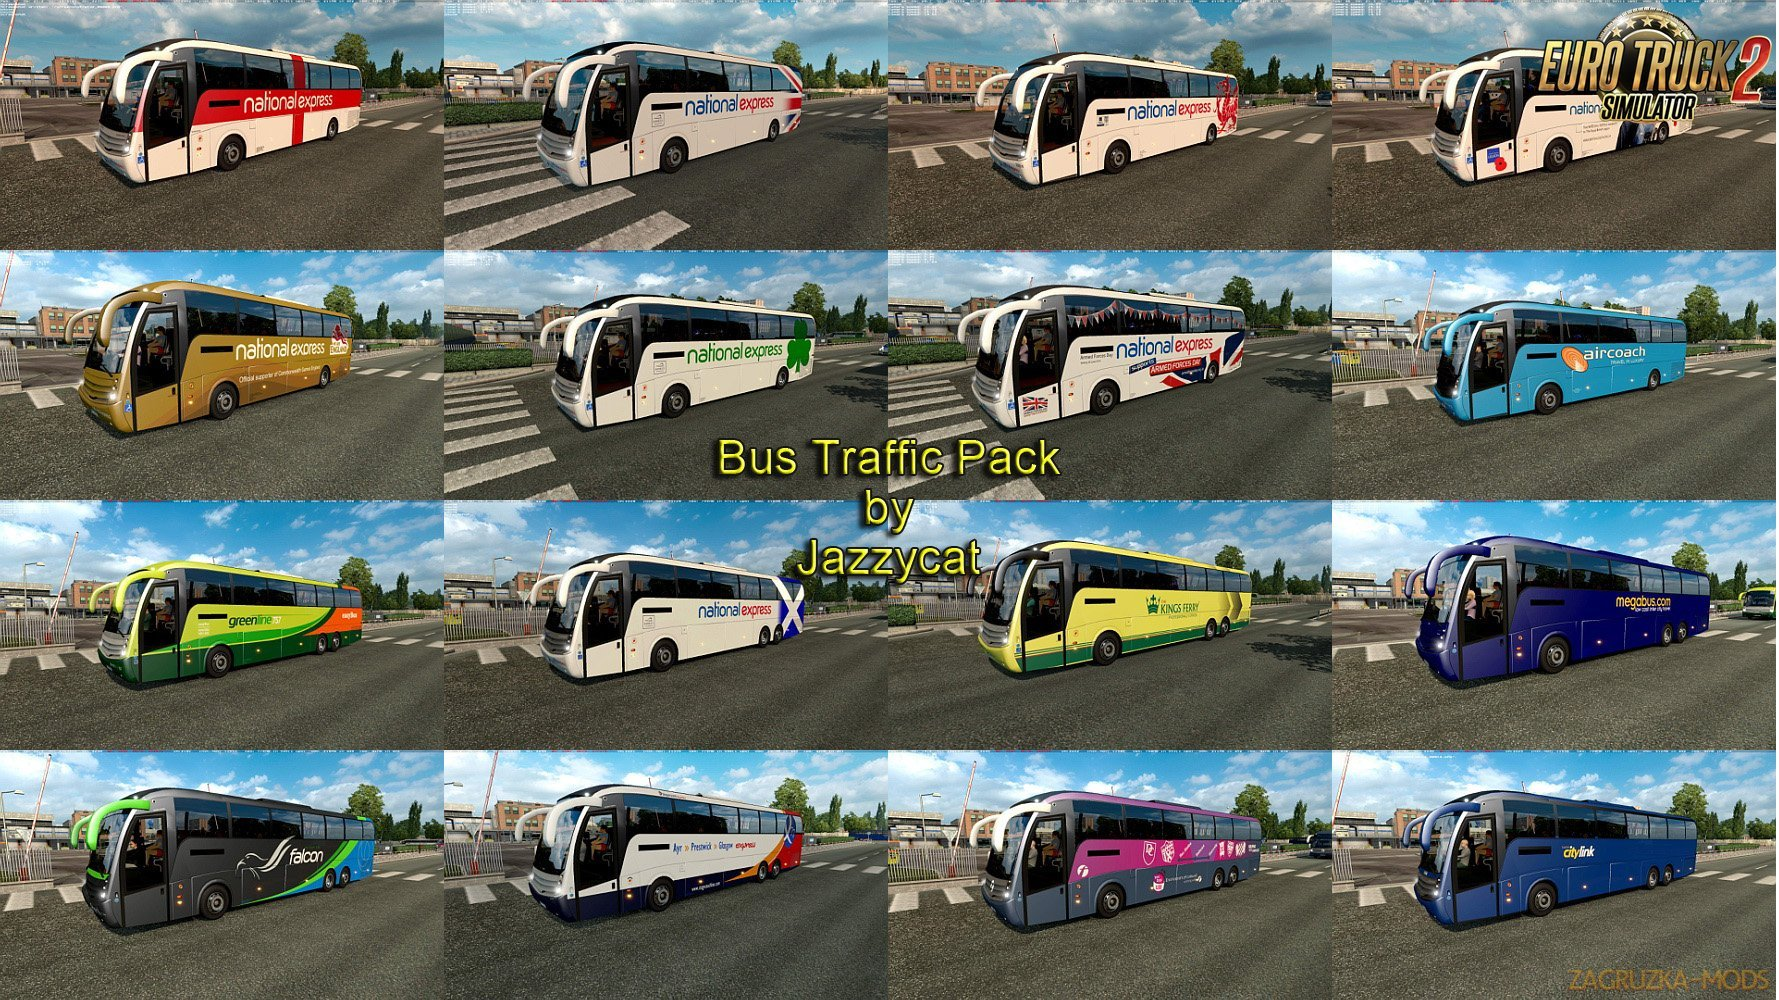 Bus Traffic Pack v2.2 by Jazzycat